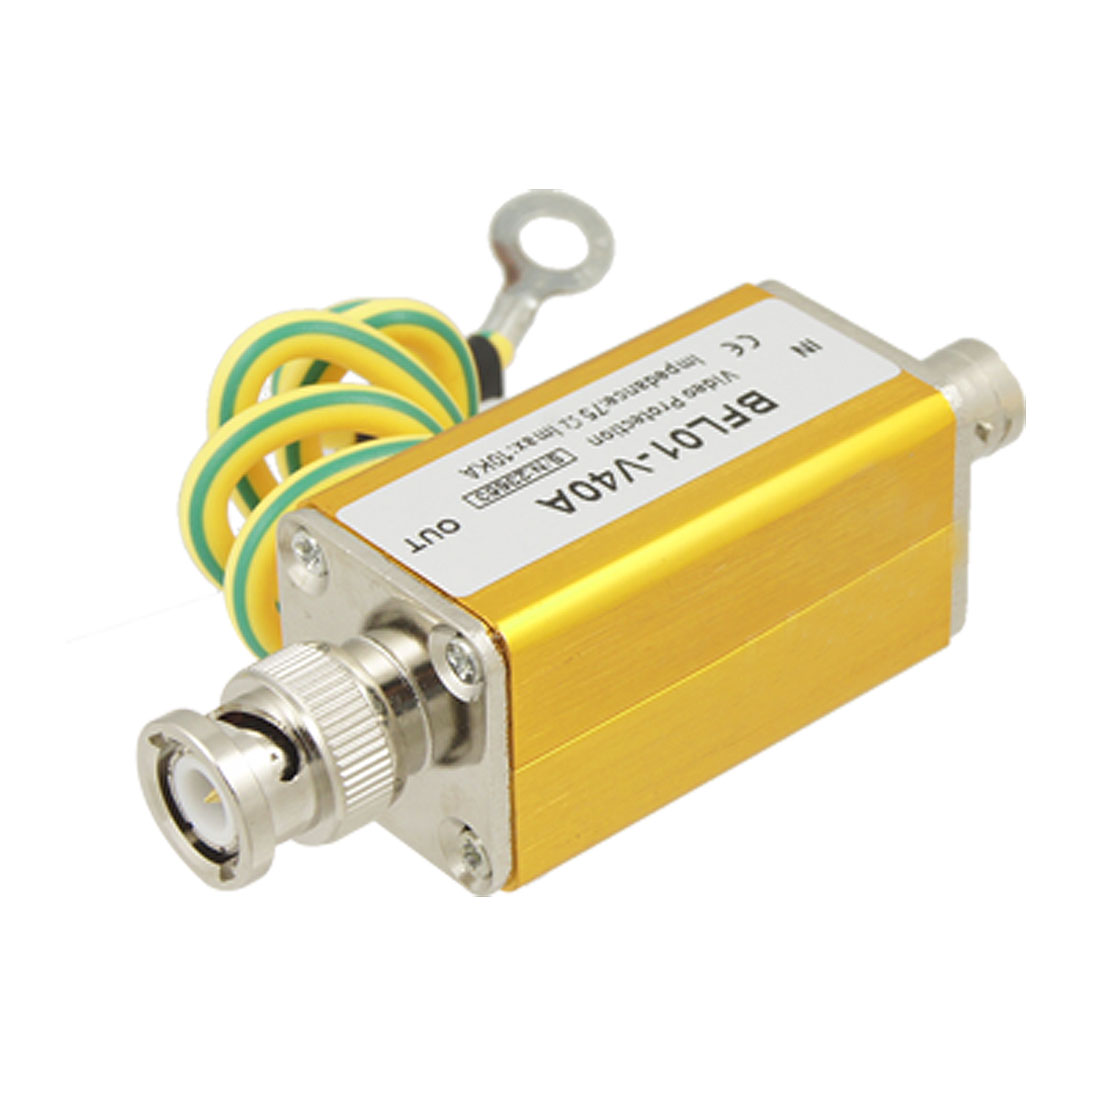 Video Coaxial BNC Male to Female Surge Lightning Arrester Protector